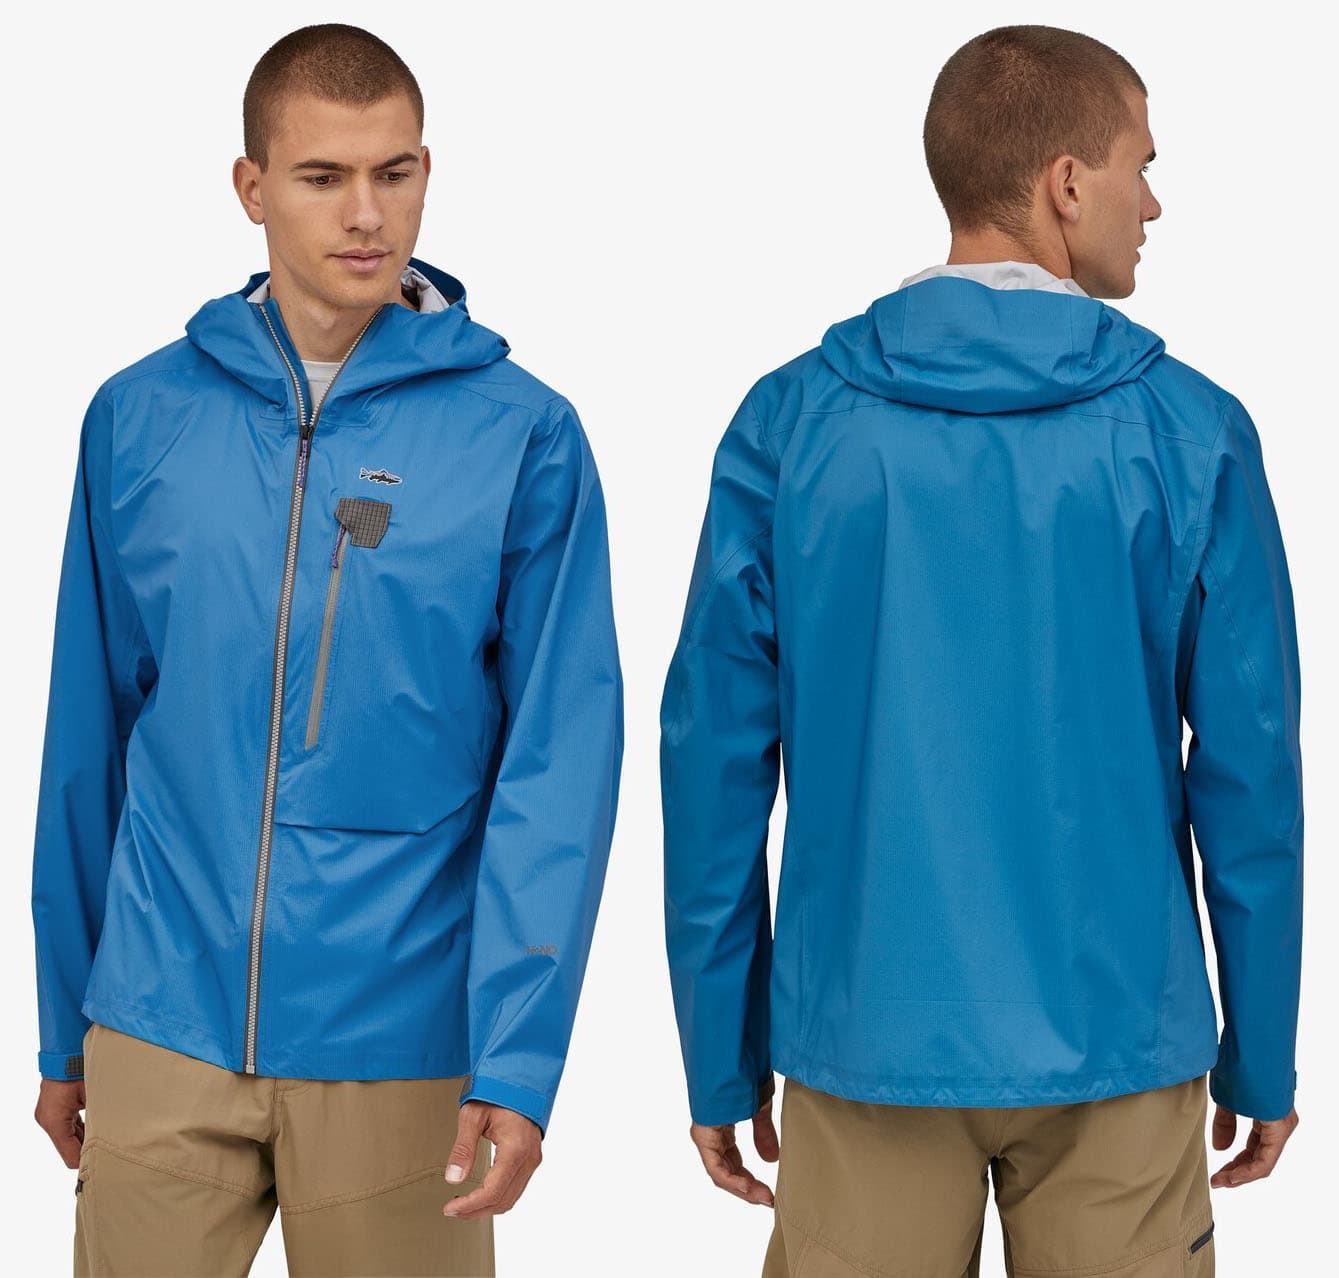 You can keep this feature-packed jacket in your bag in case of sudden rain